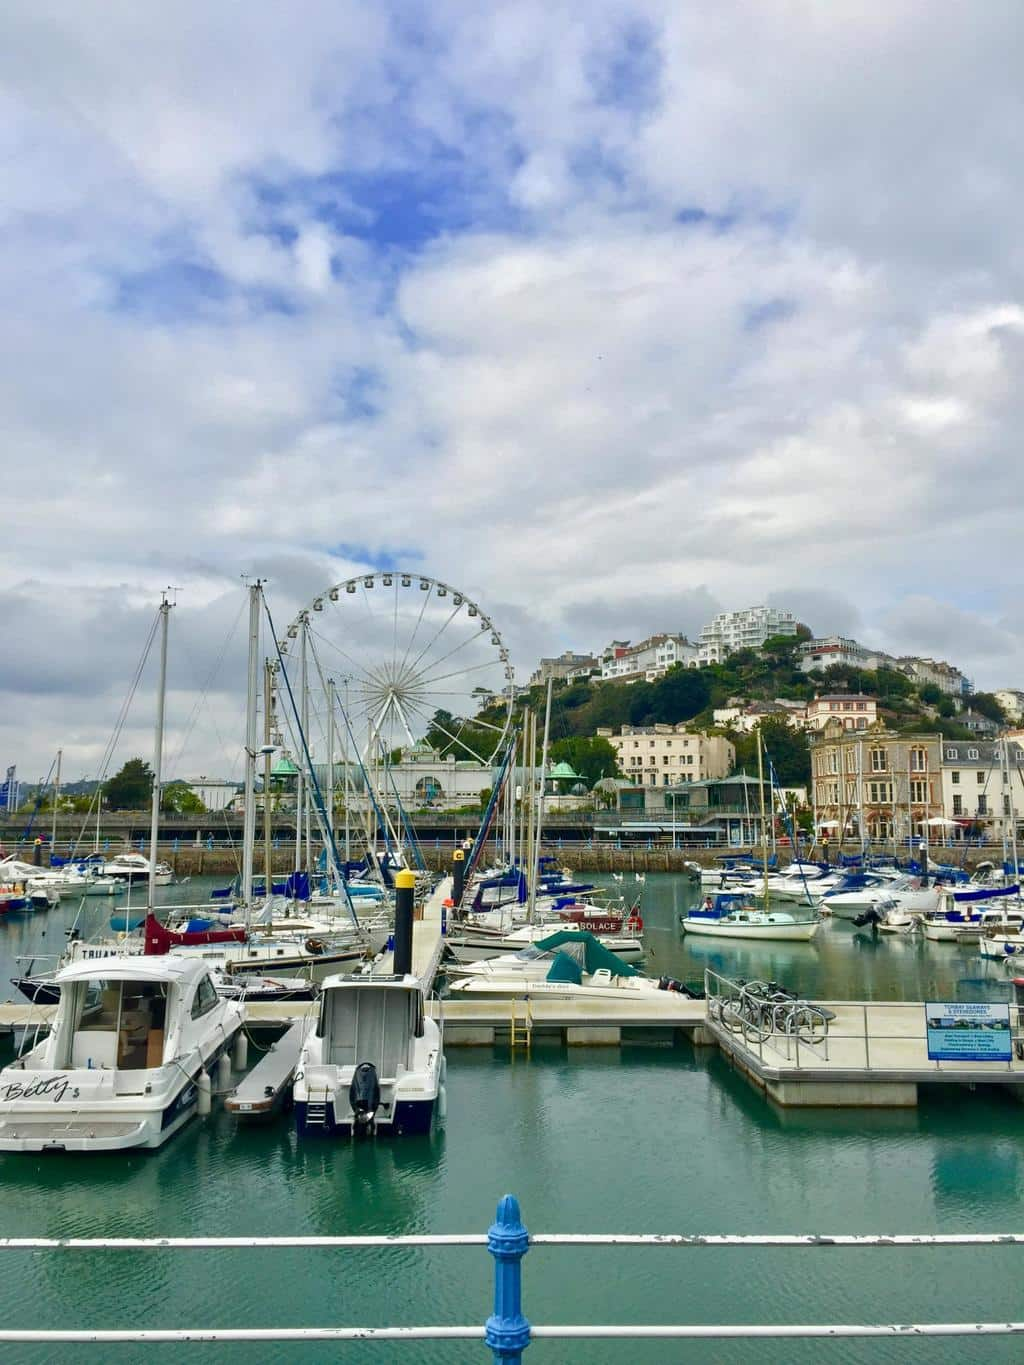 Our Torquay Mini Break & The Crowndale Hotel